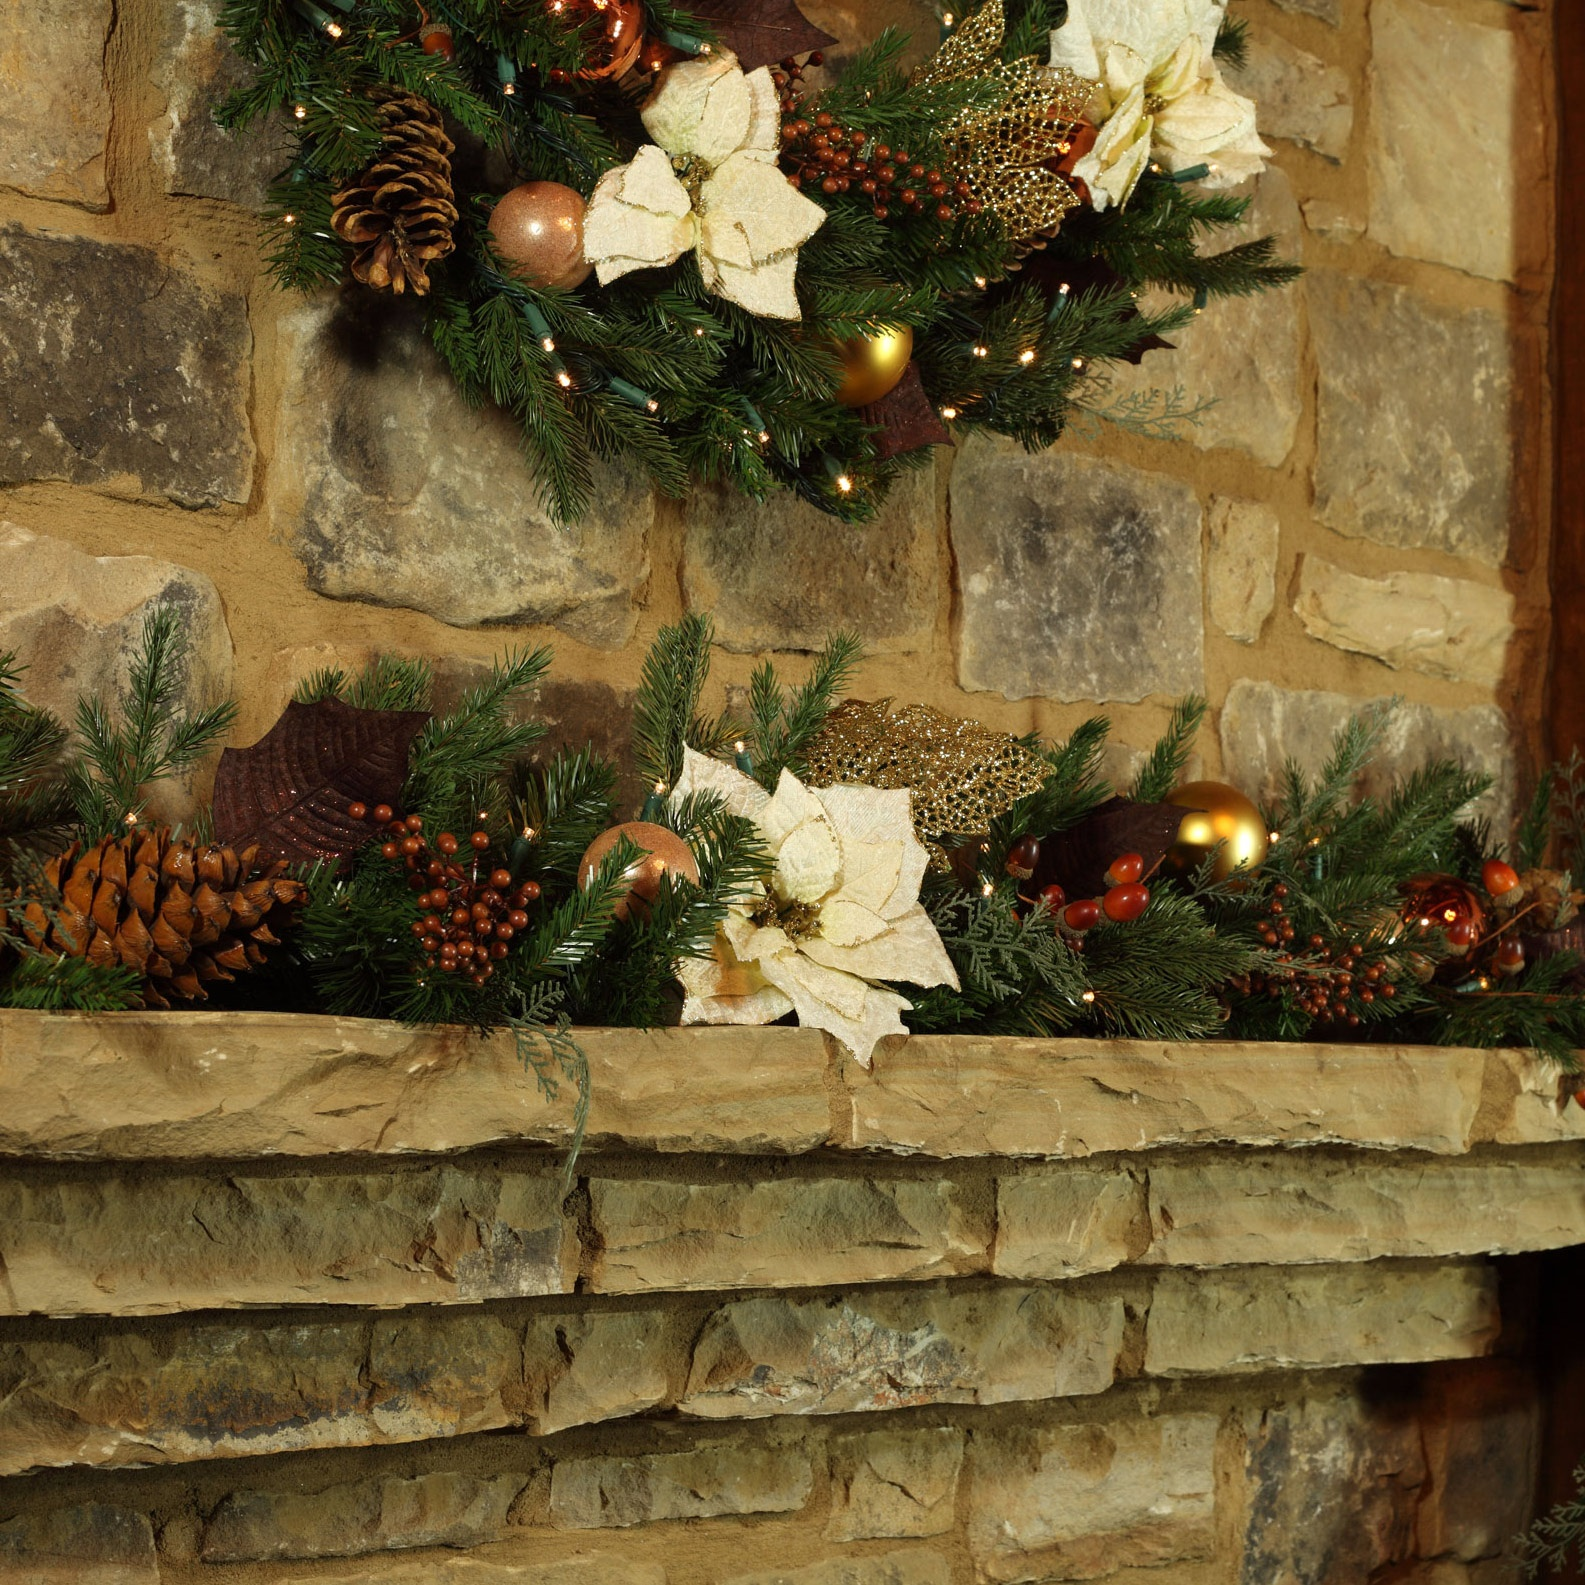 decorative garland